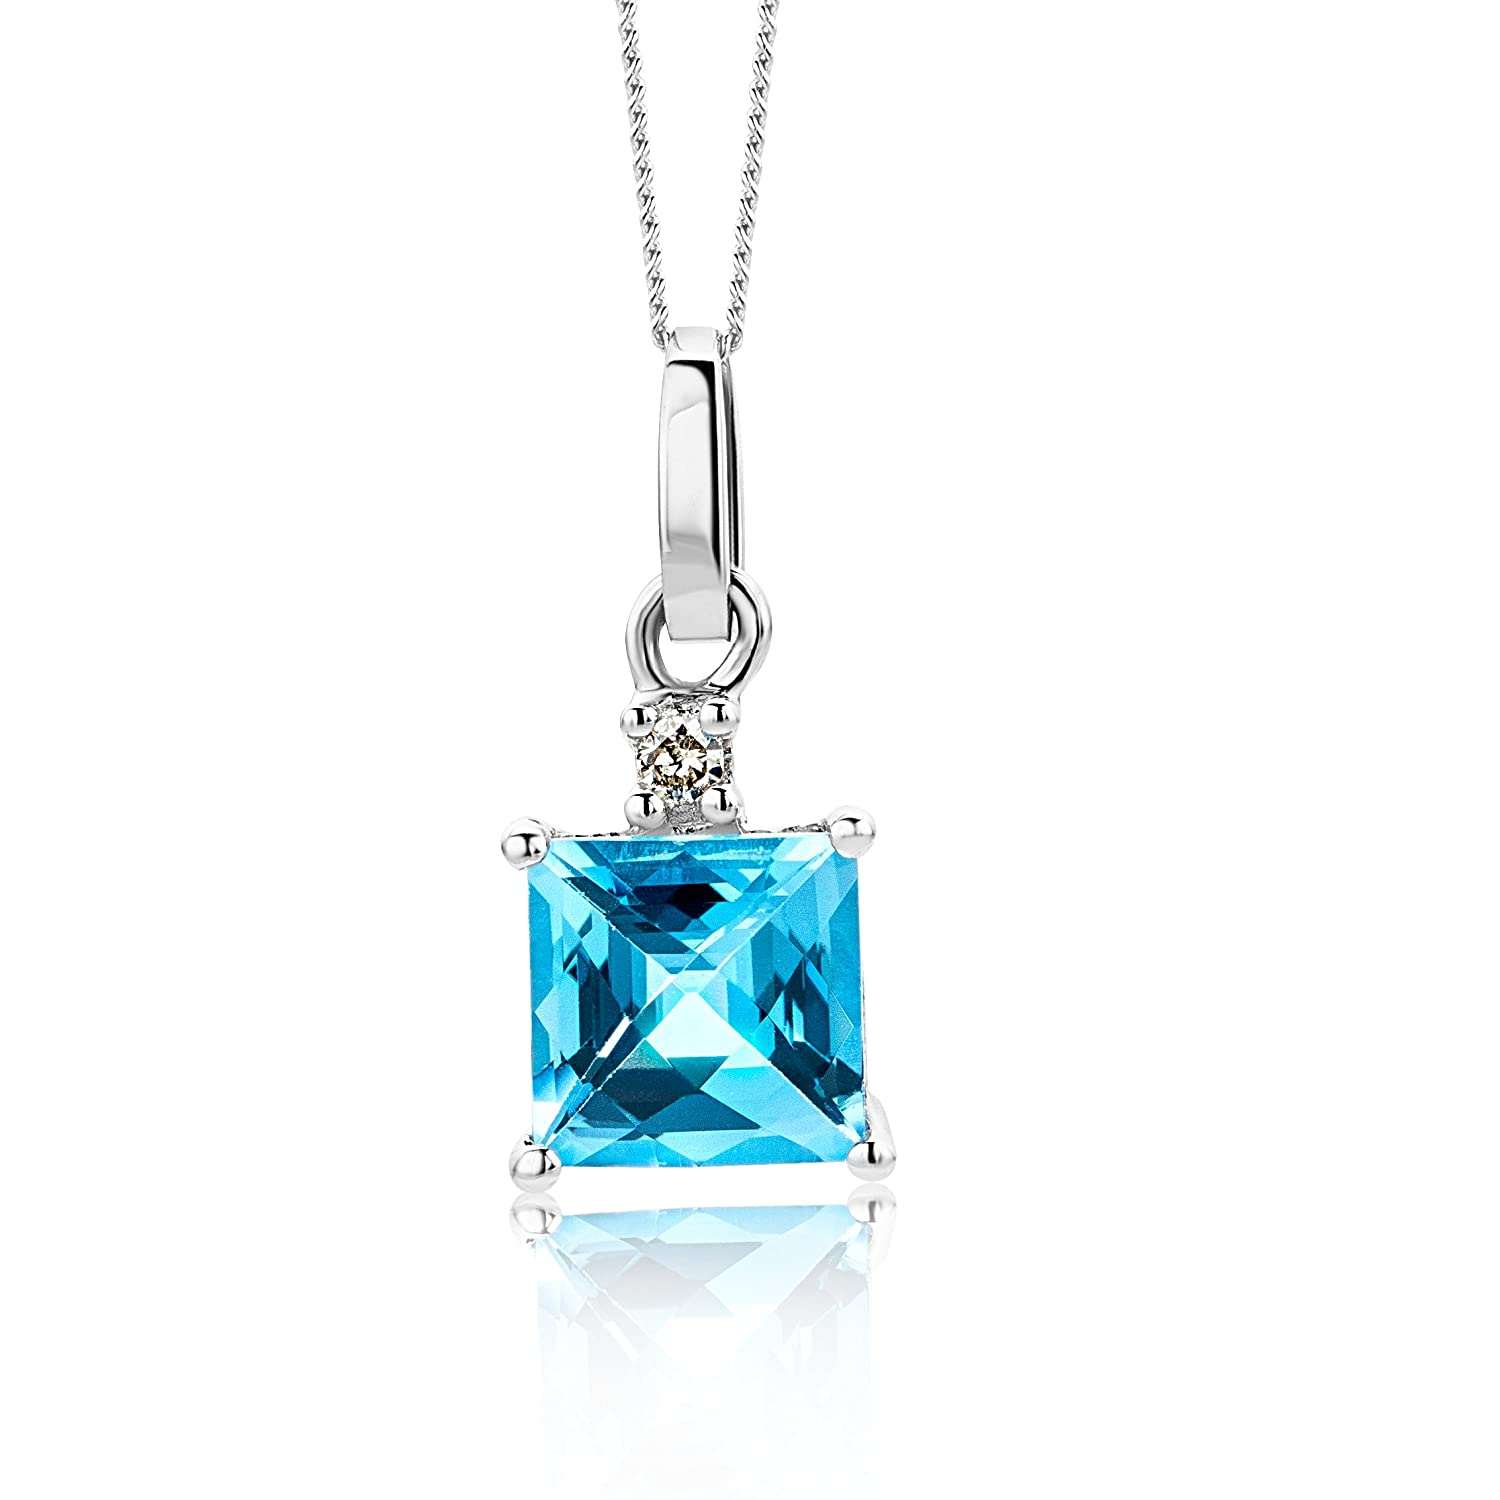 name id cut versona pendant necklace mobile cushion products cfm